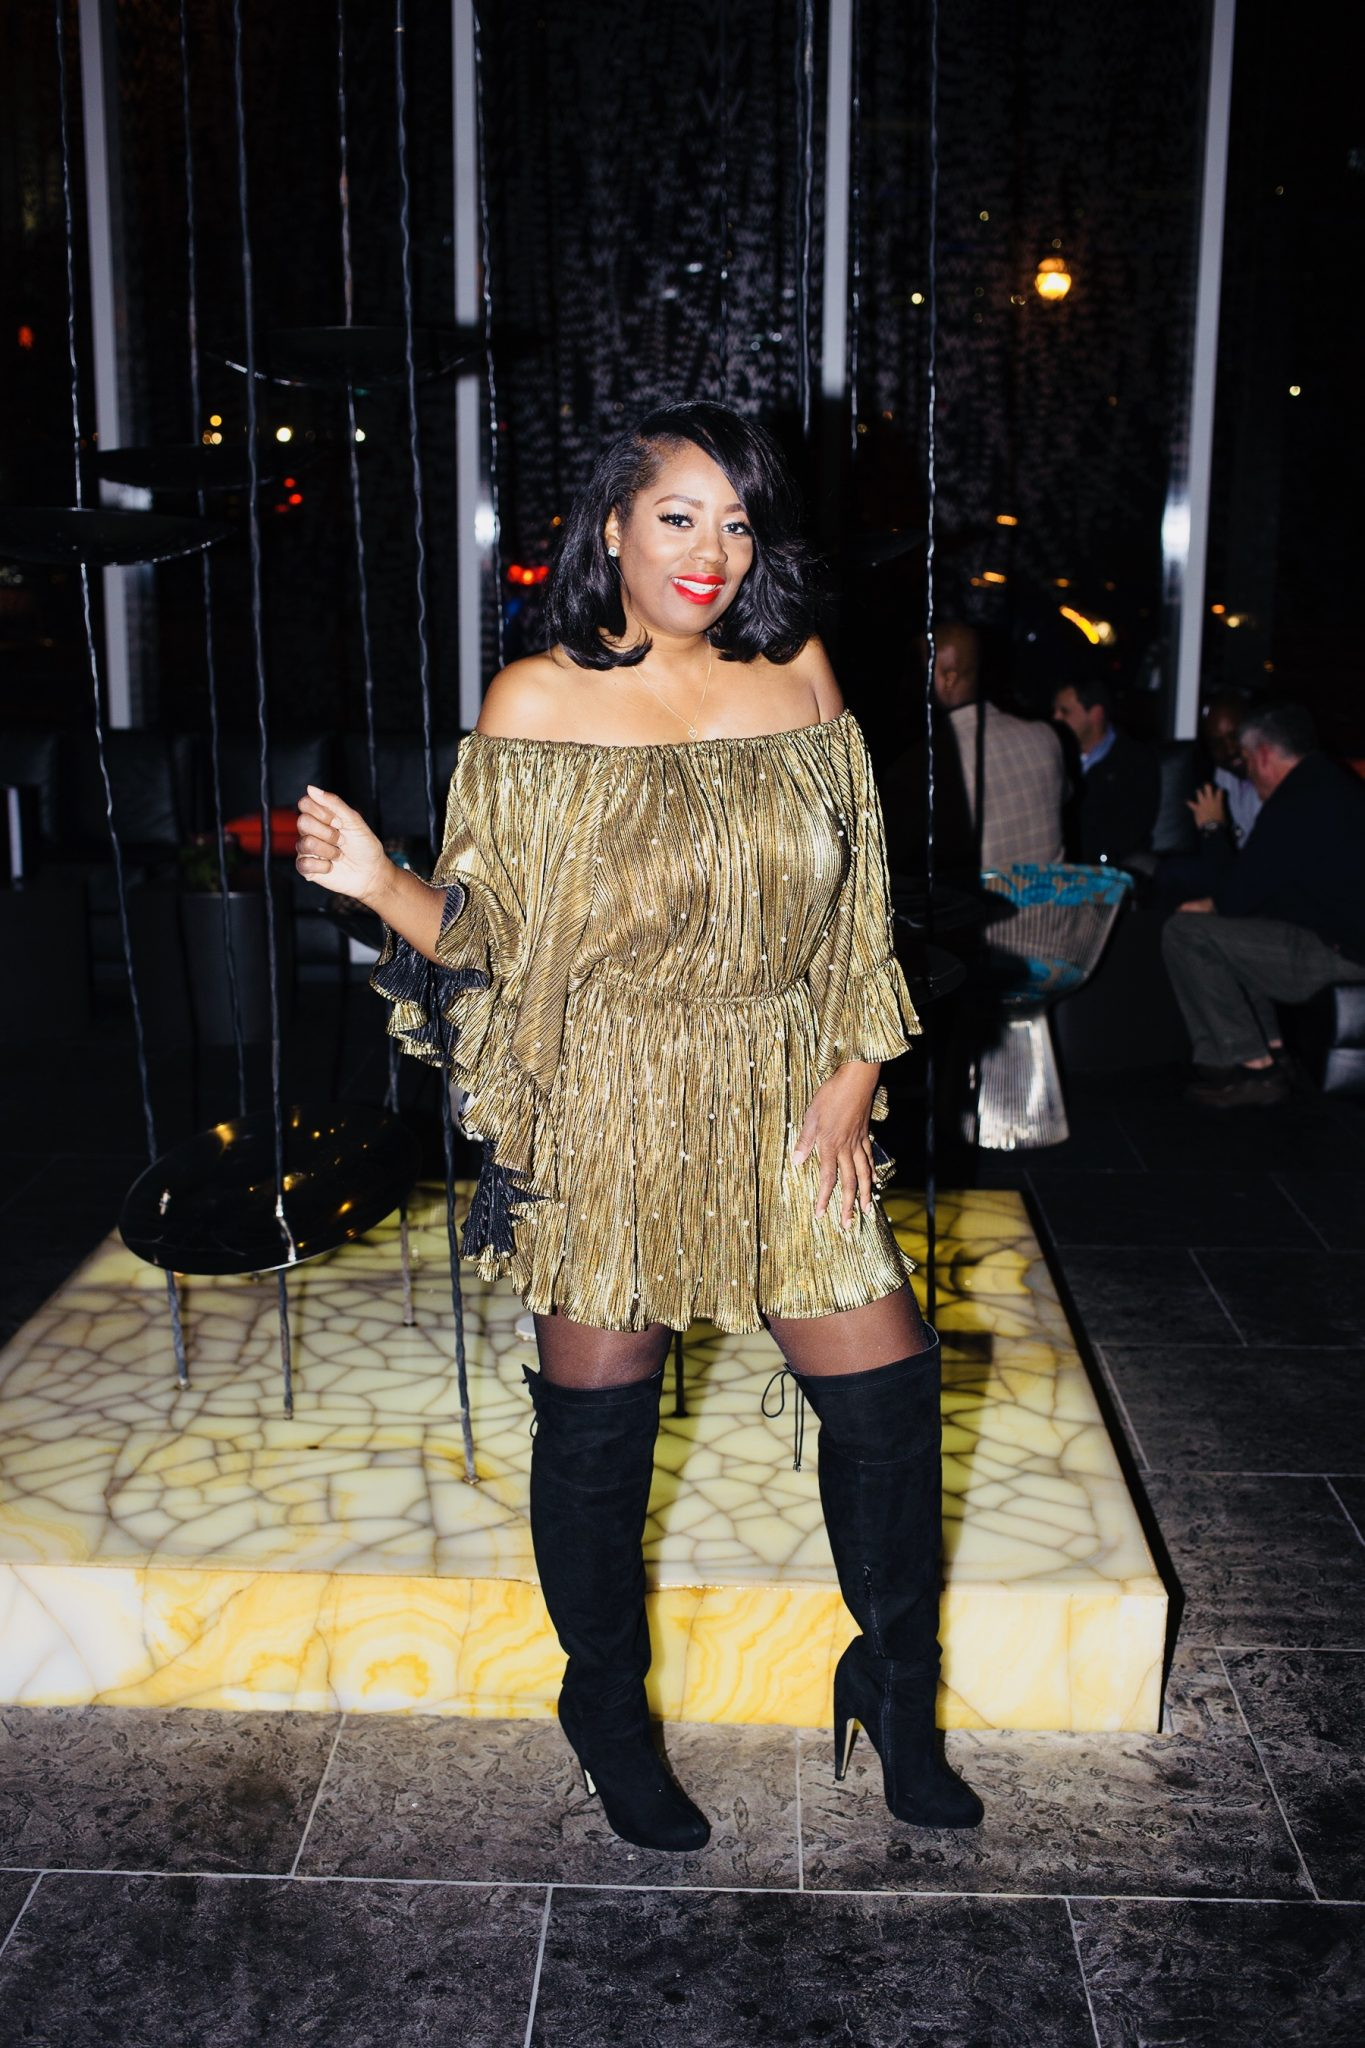 My Style: Why Dress Apparel Gold Frilly Romper